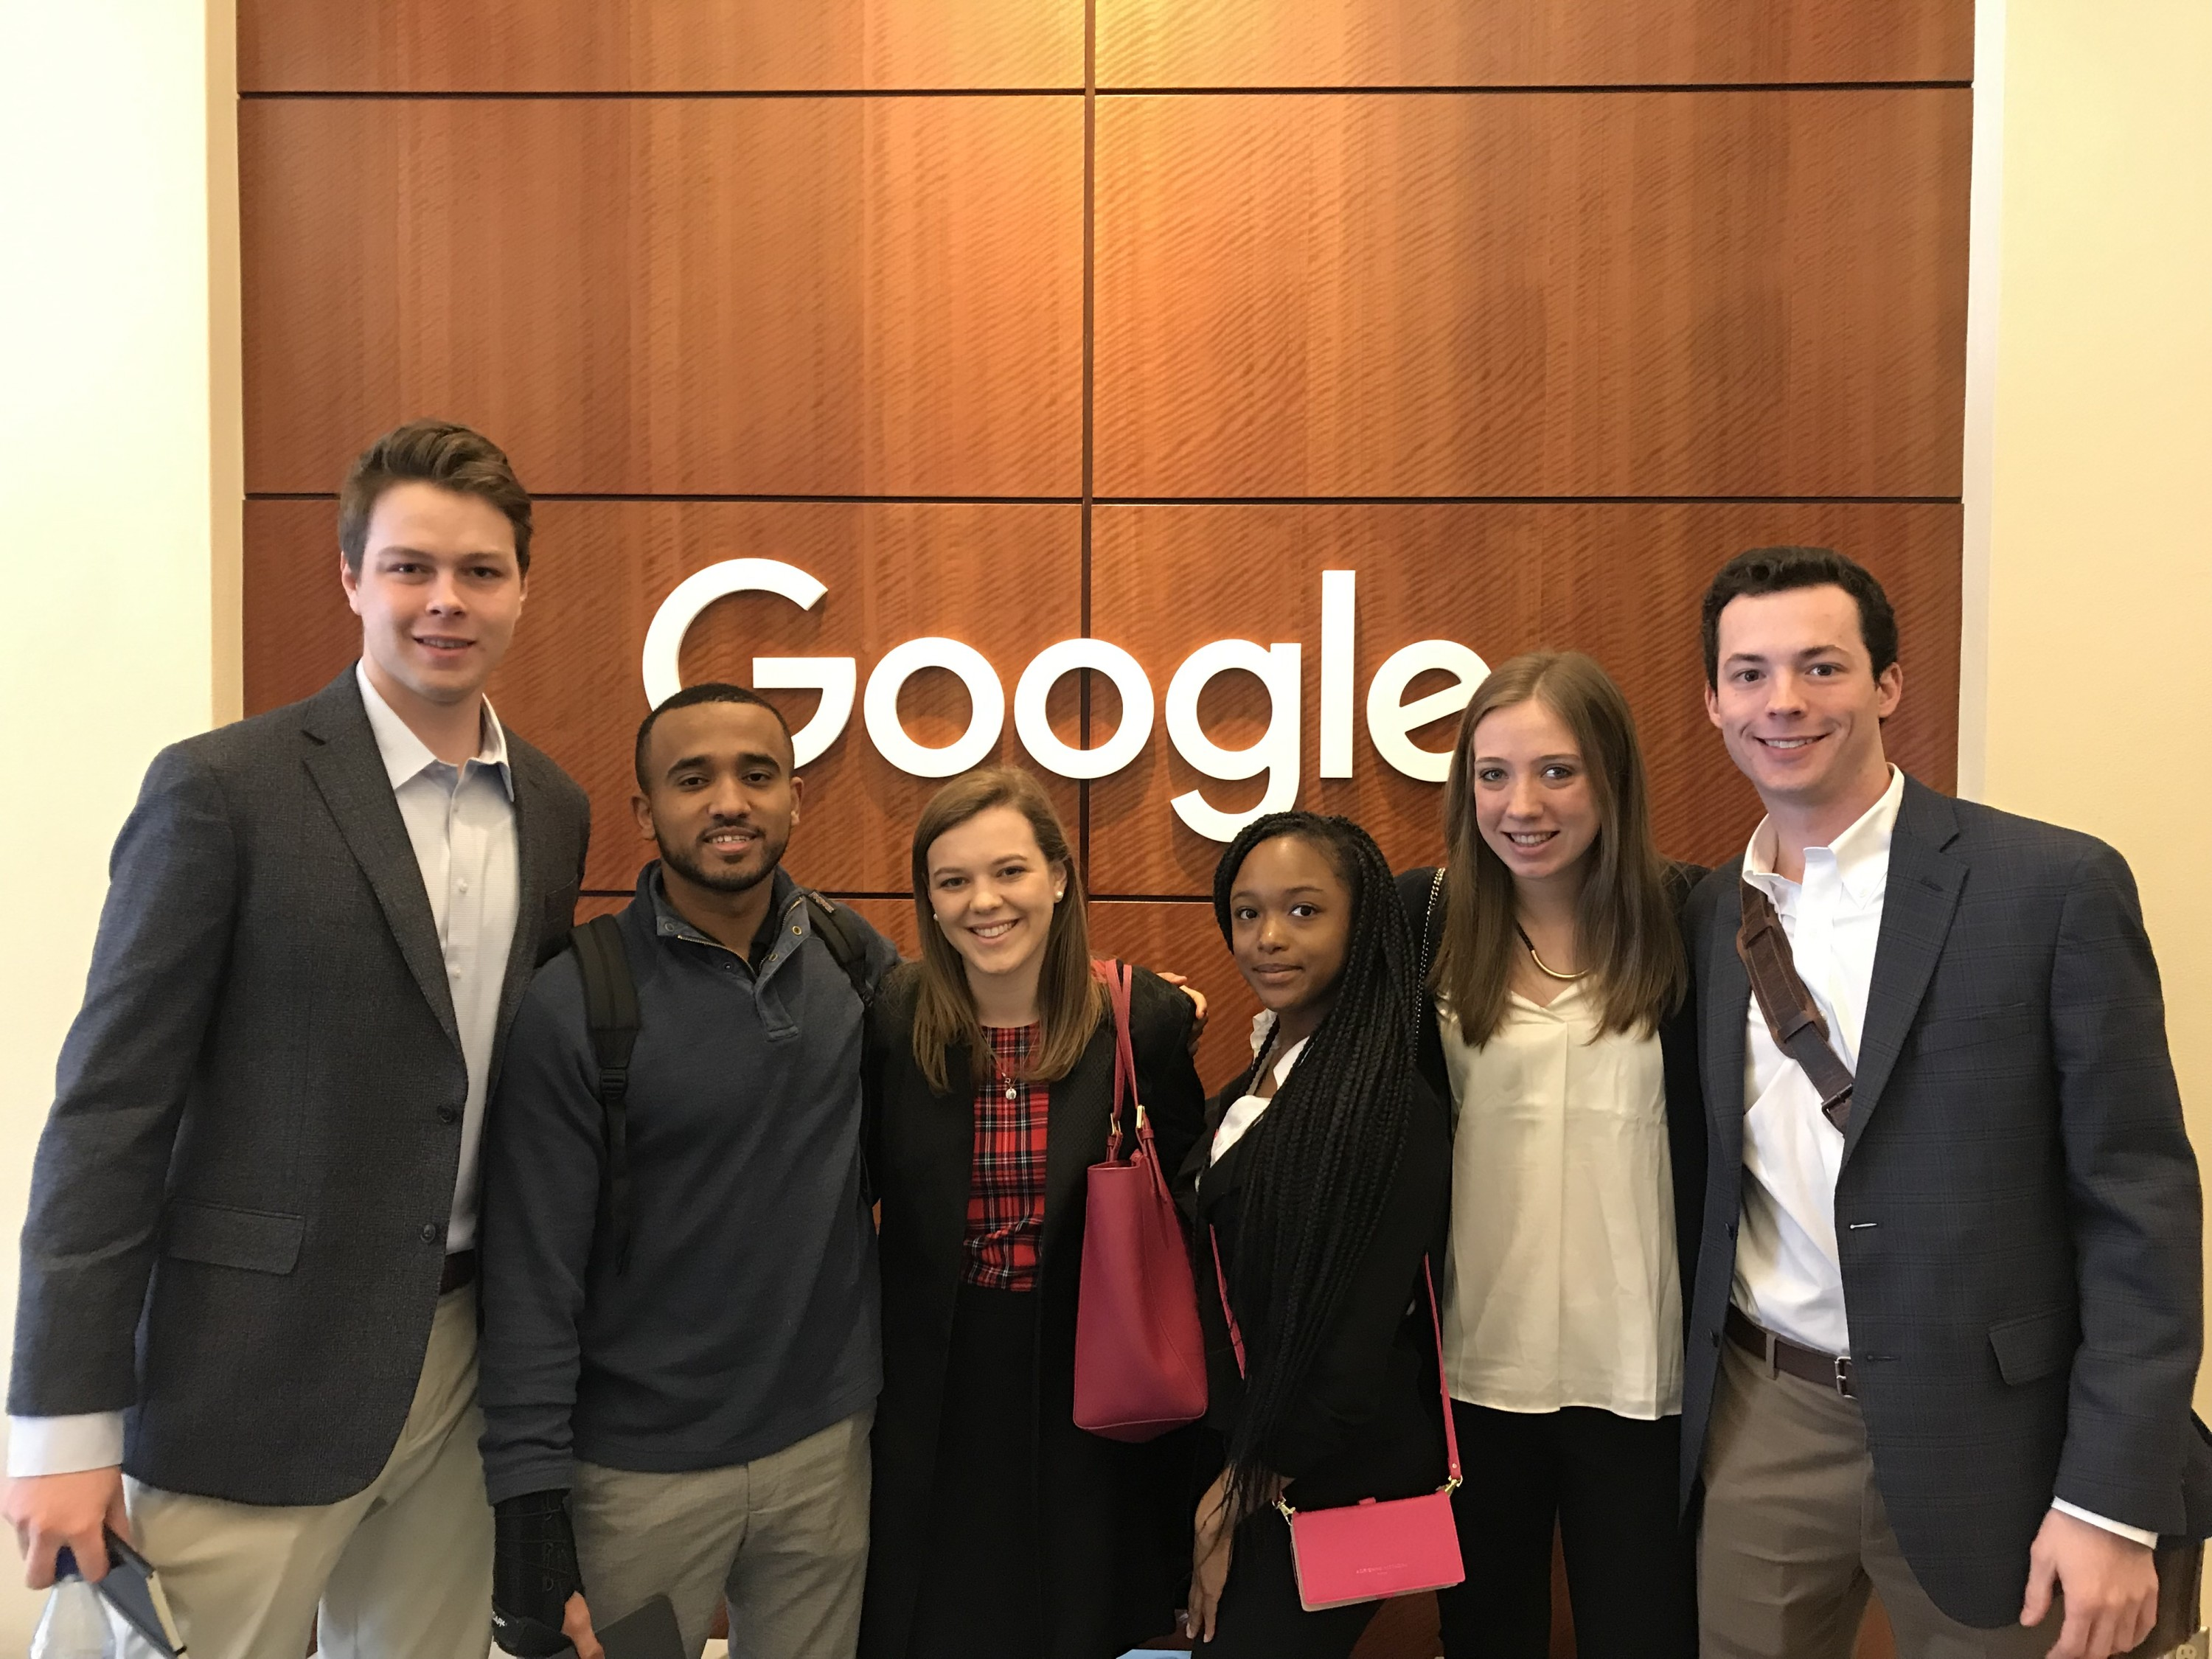 Sophomore Carey Fellows travel to San Francisco to meet with Sewanee alumni who are business leaders in technology, banking, digital health care, and asset management.